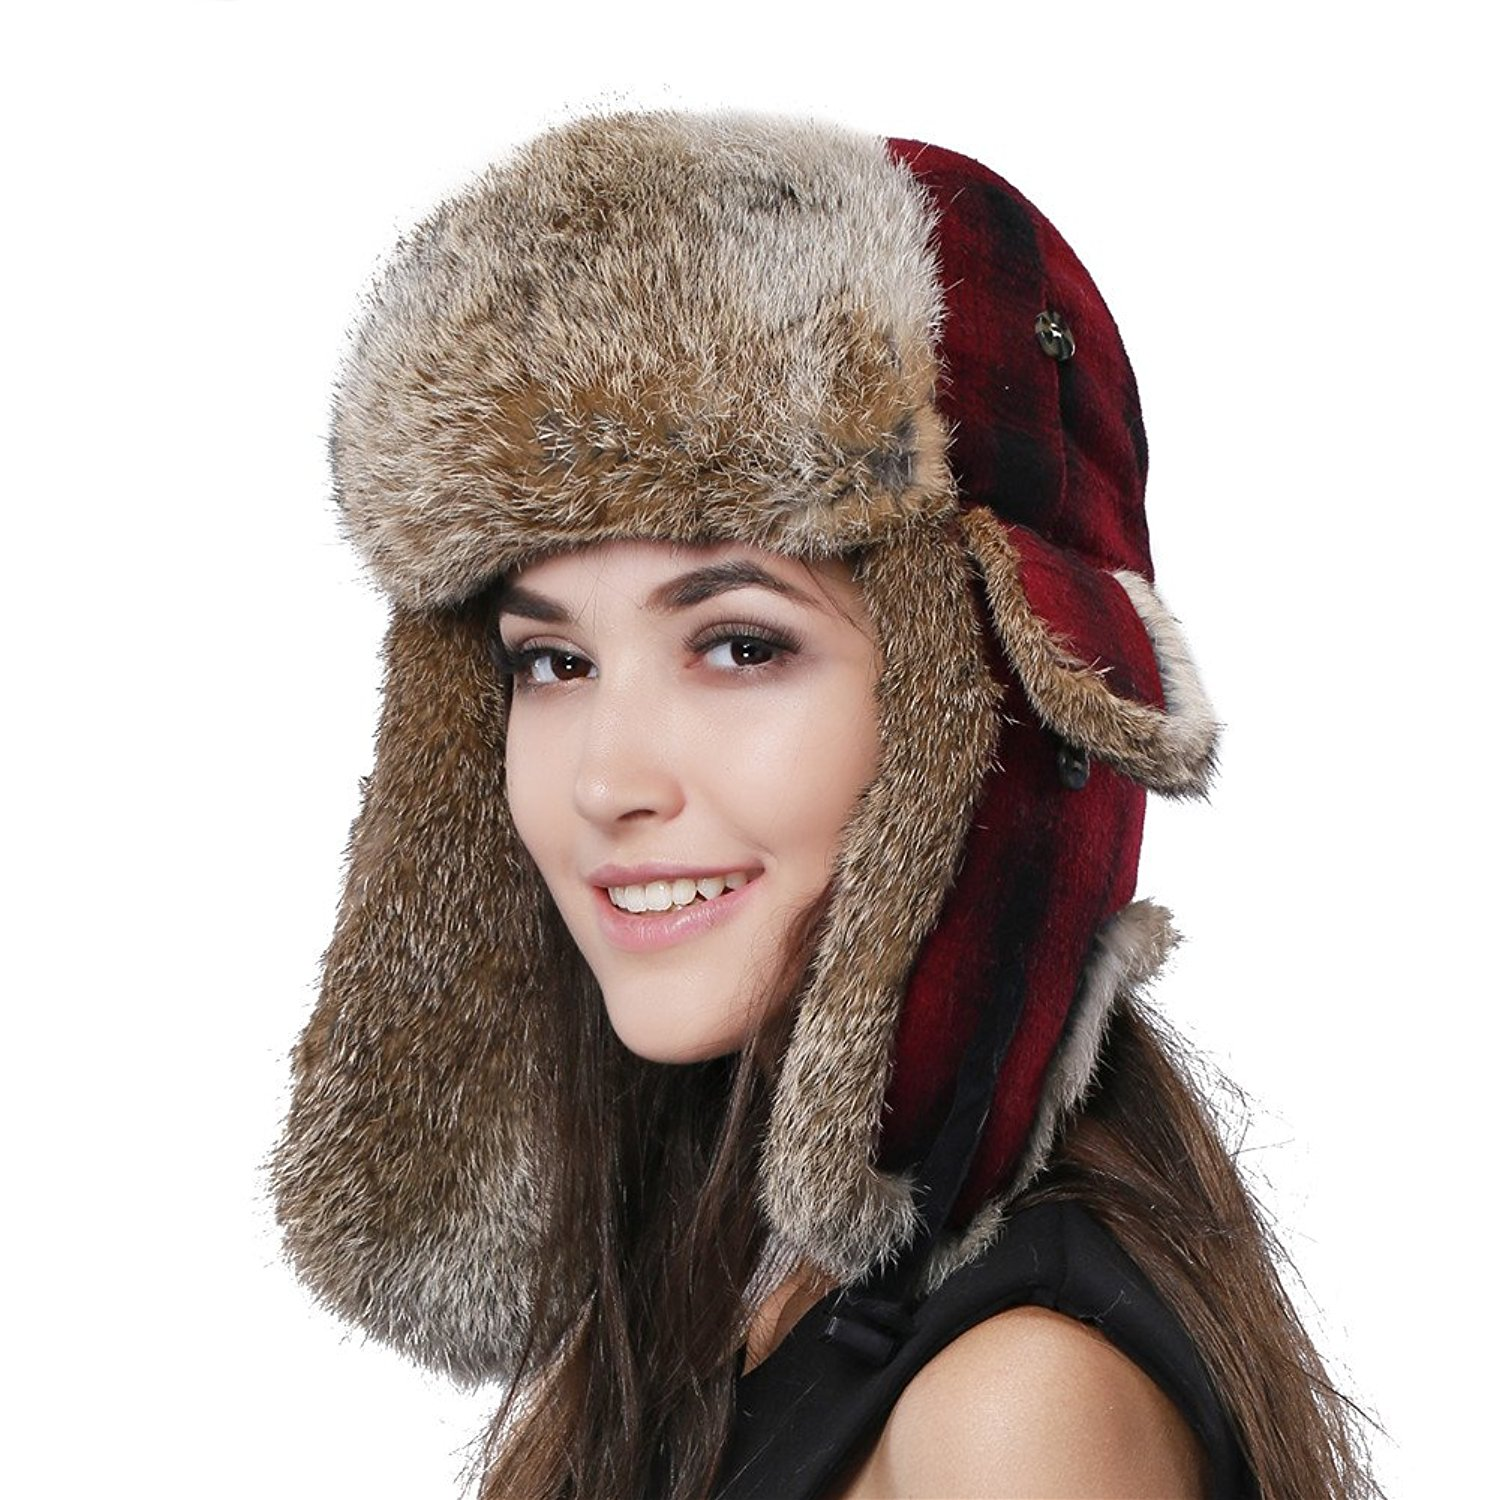 c83ee322e2072 Get Quotations · FURTALK Natural Rabbit Fur Ushanka Trapper Hat Aviator  Winter Cap For Women